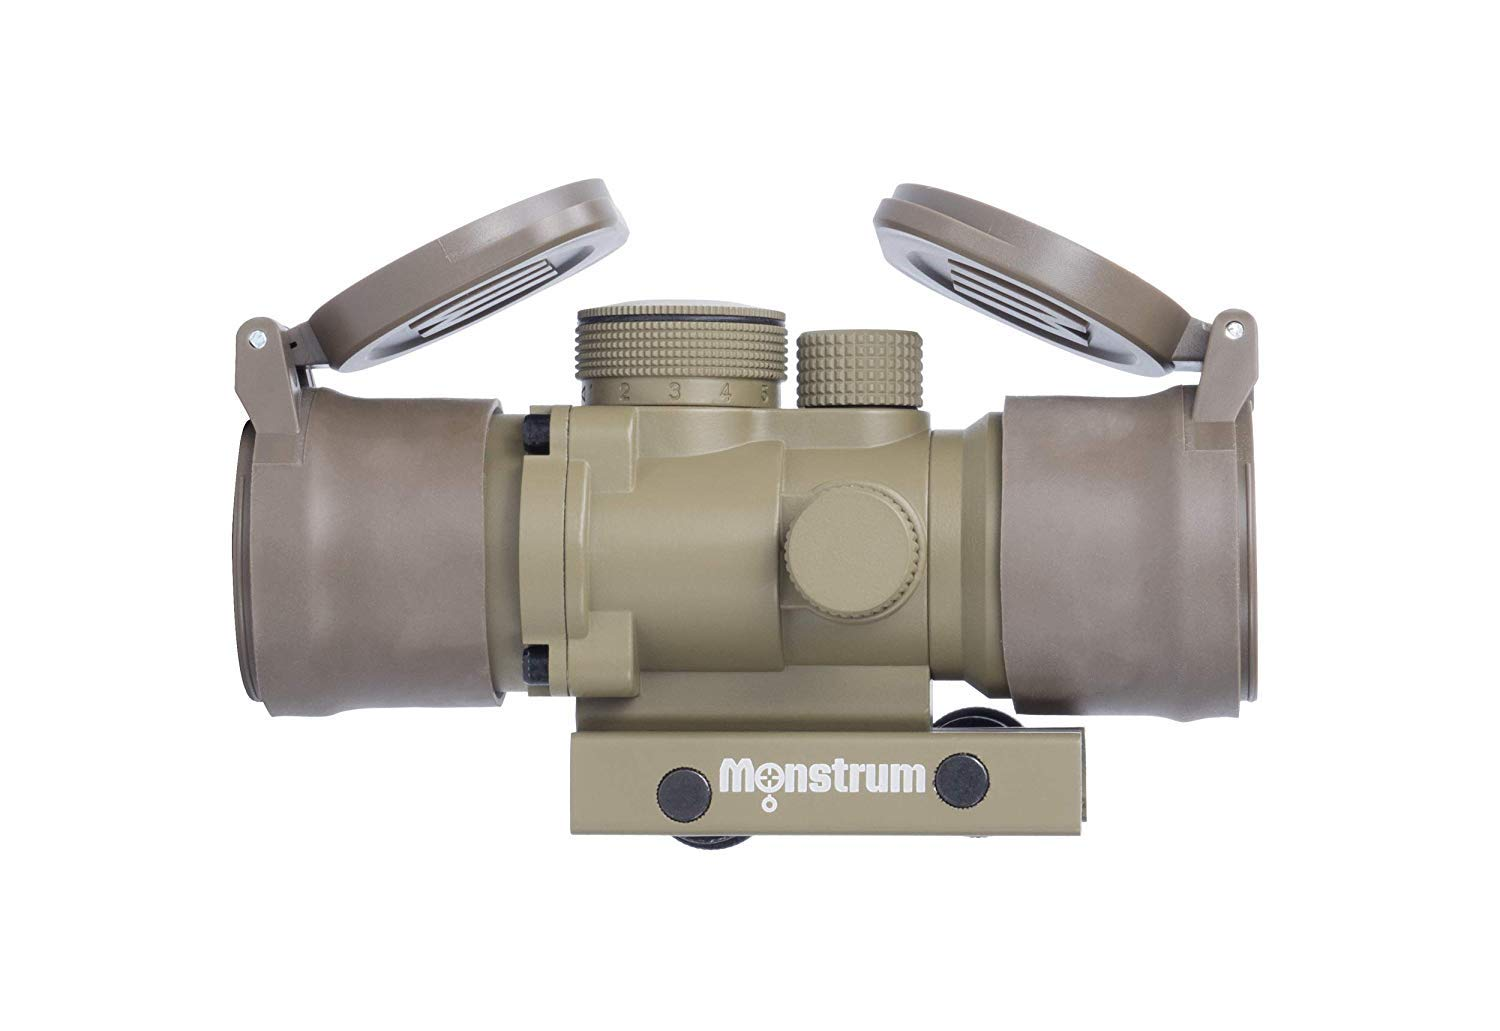 Monstrum S330P 3X Prism Scope | Flat Dark Earth with Flip-Up Lens Covers by Monstrum